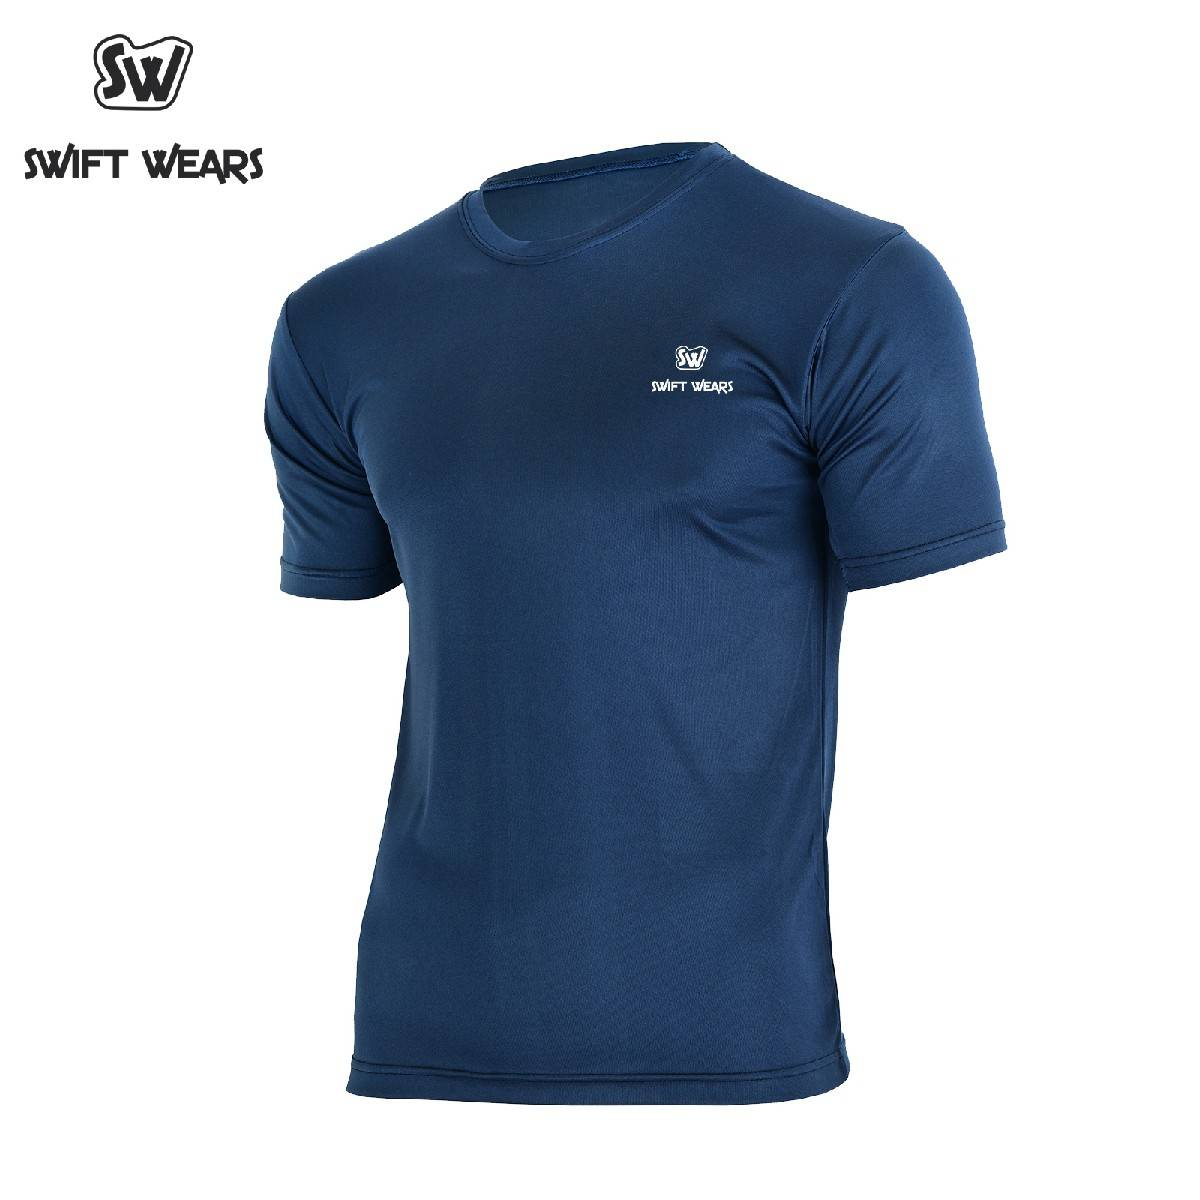 Men's Football Quick Dry Sports Gym Fitness Exercise Running Shirt Navy Blue